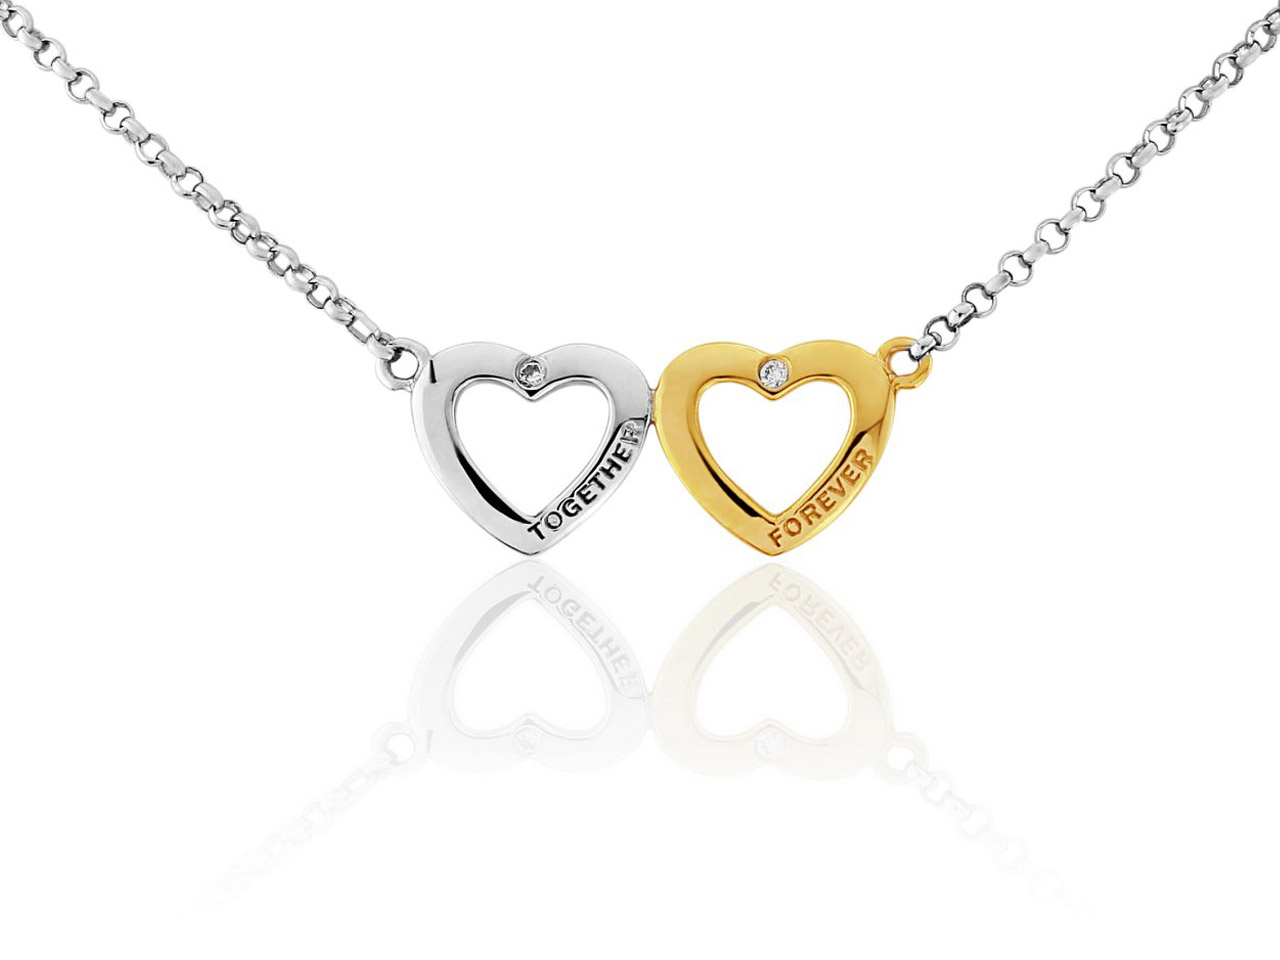 Sterling Silver Necklet Gold Plated Double Heart Cubic Zirconia Set     Together Forever